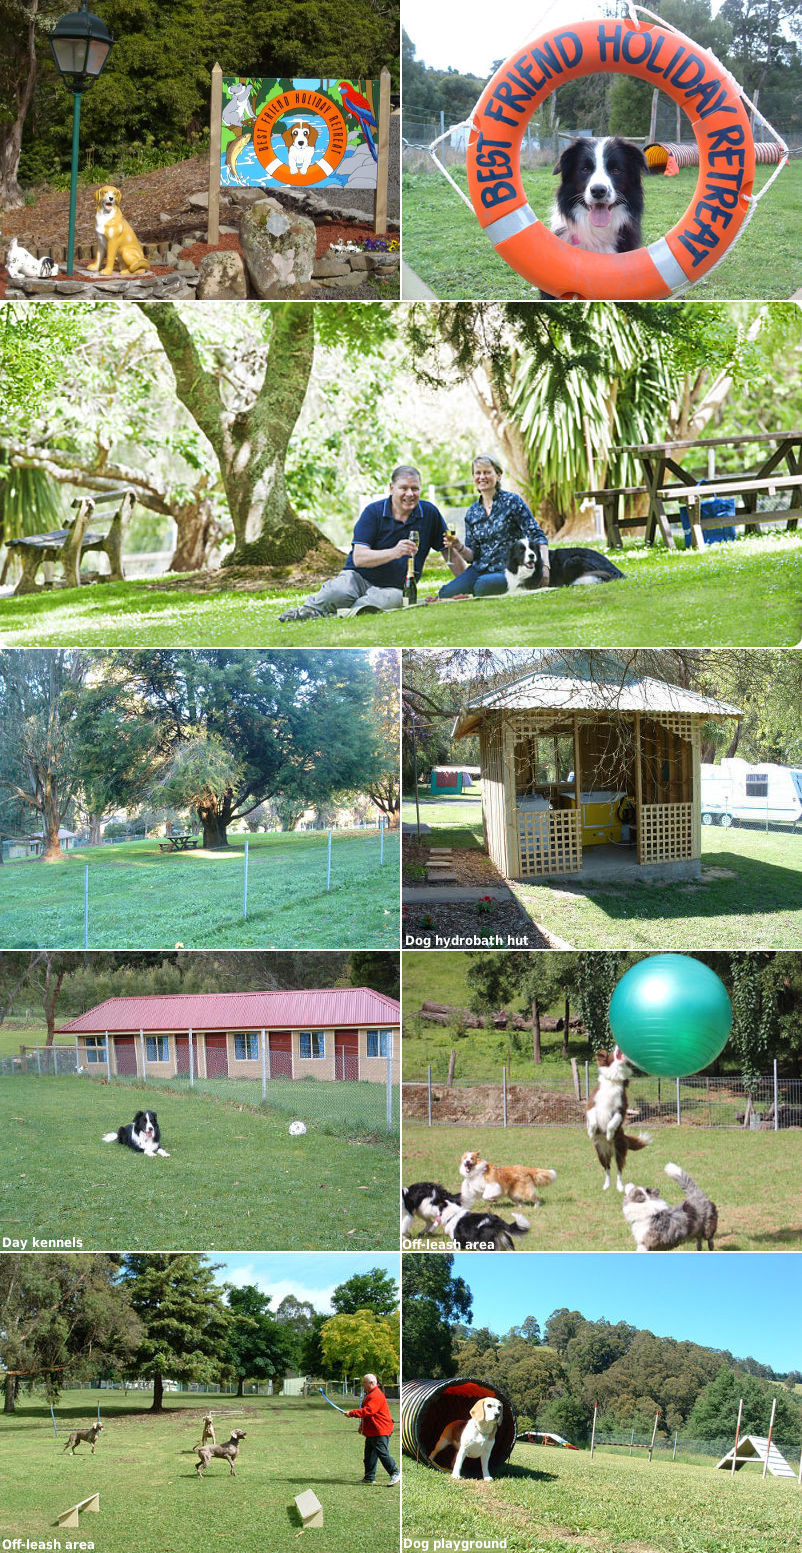 Best Friend Holiday Retreat - Fenced sites and facilities